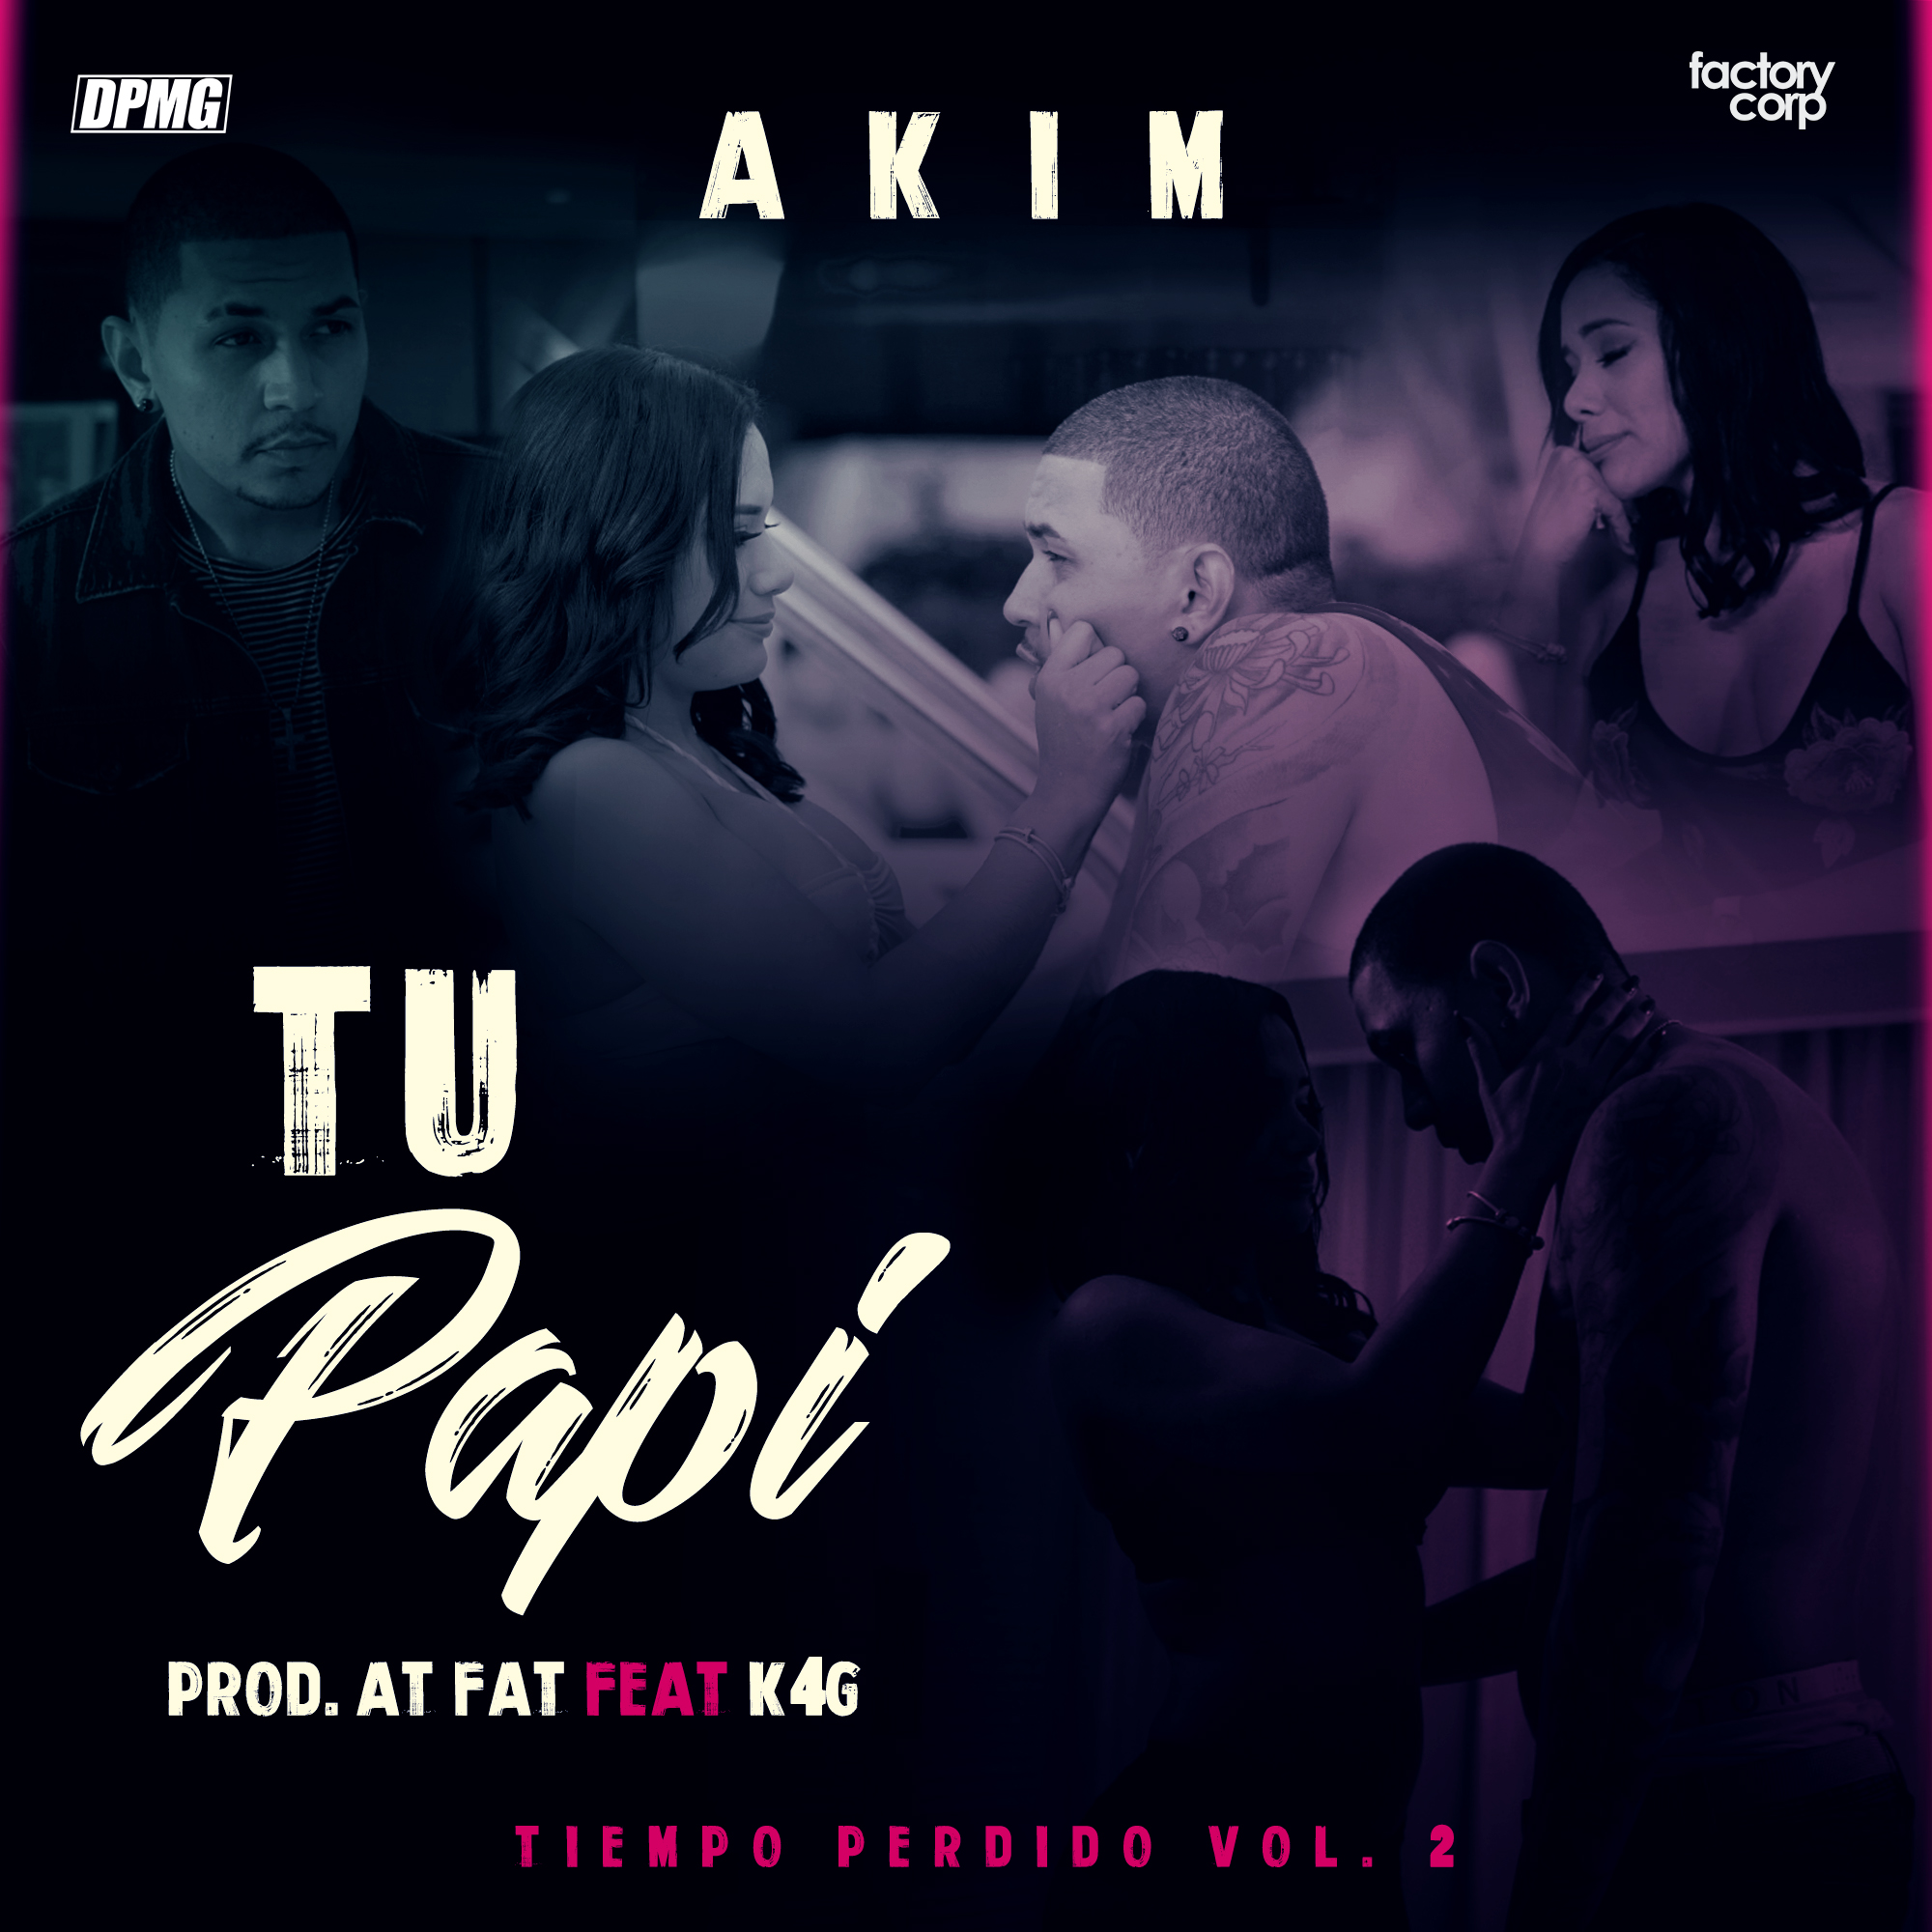 Photo of Akim estrena 'Tu papi'